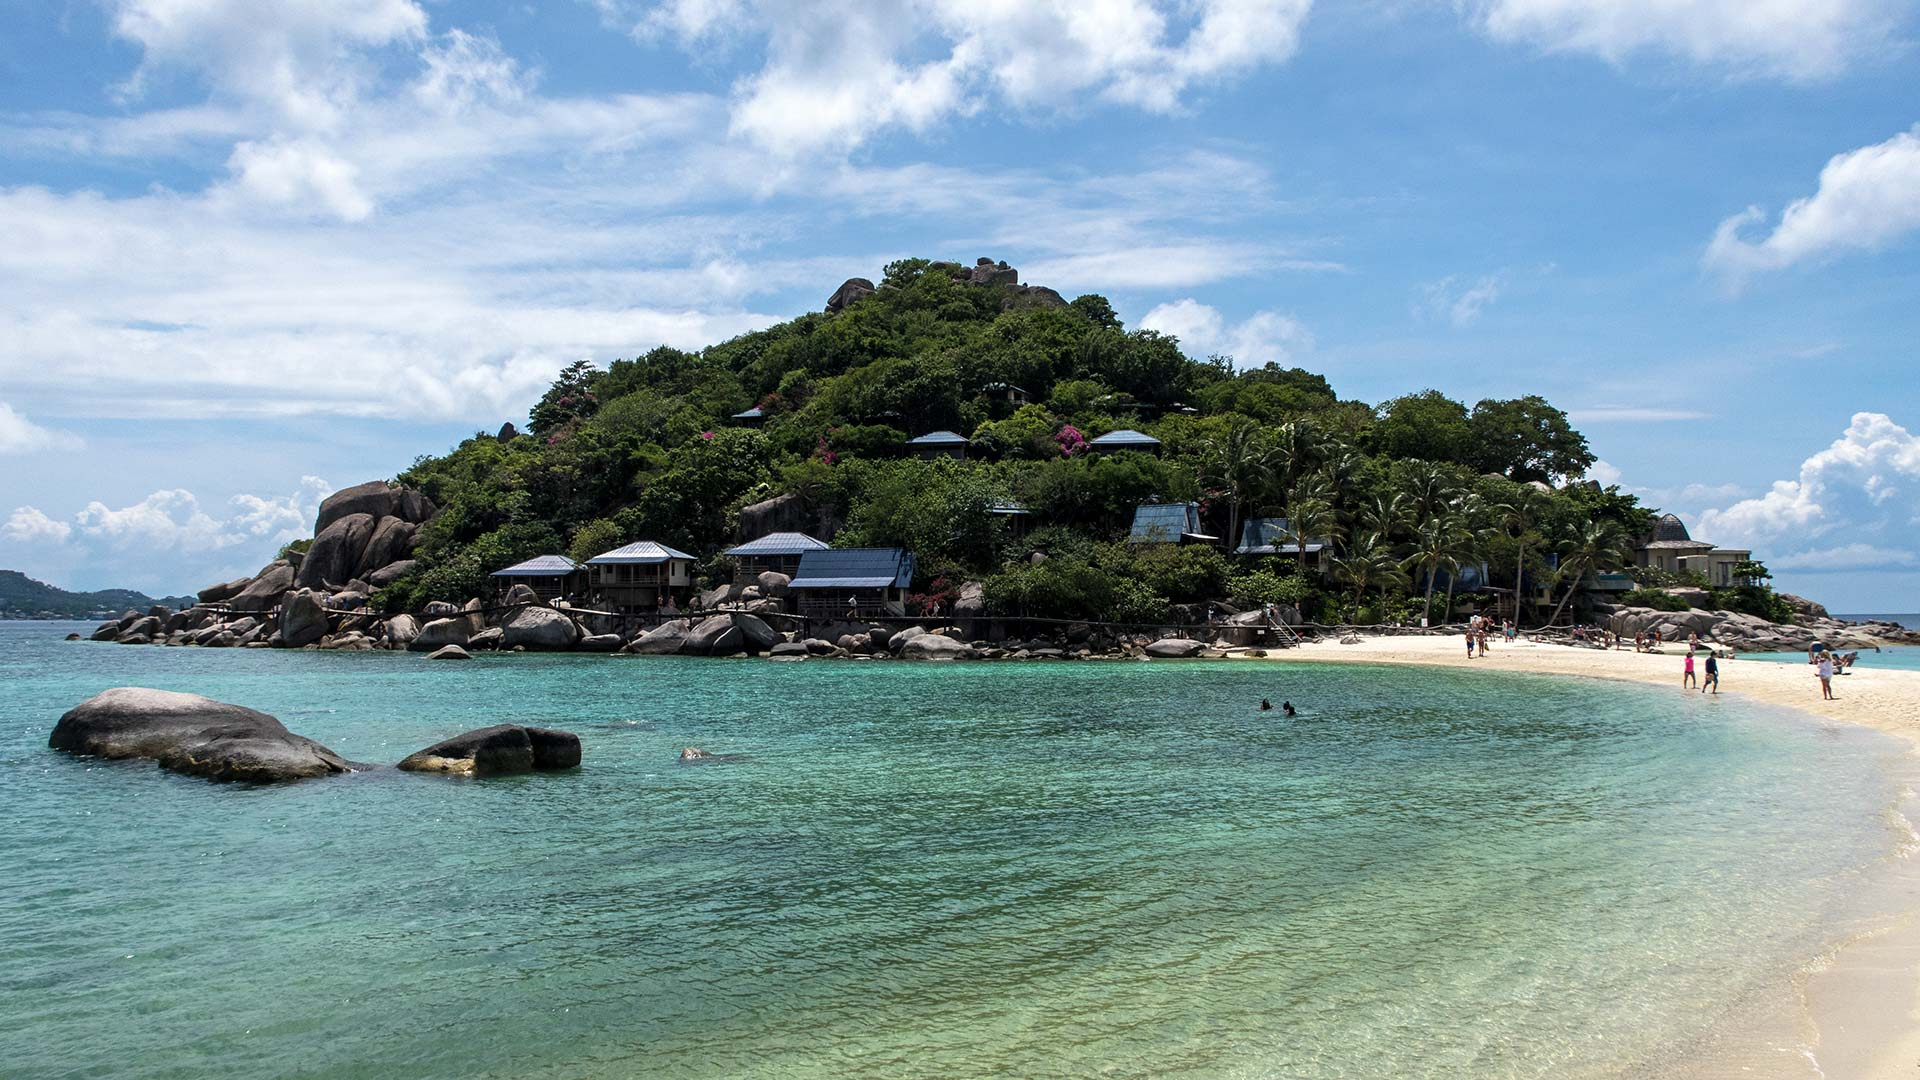 The View At Koh Nang Yuan With Famous Sandbank